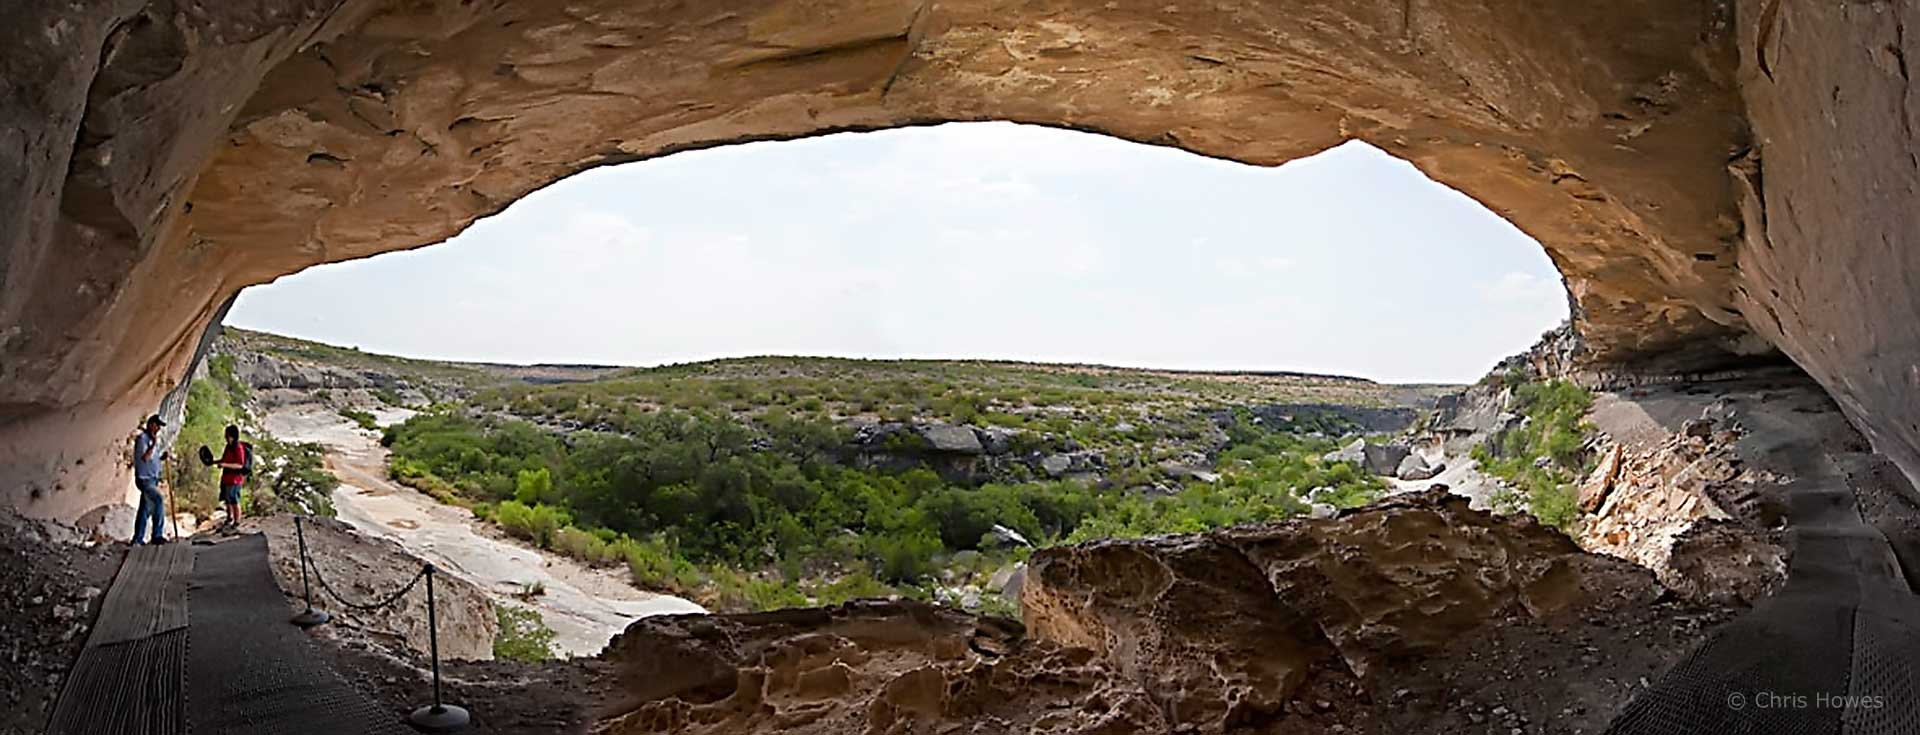 Fate Bell Shelter, Seminole Canyon, Texas